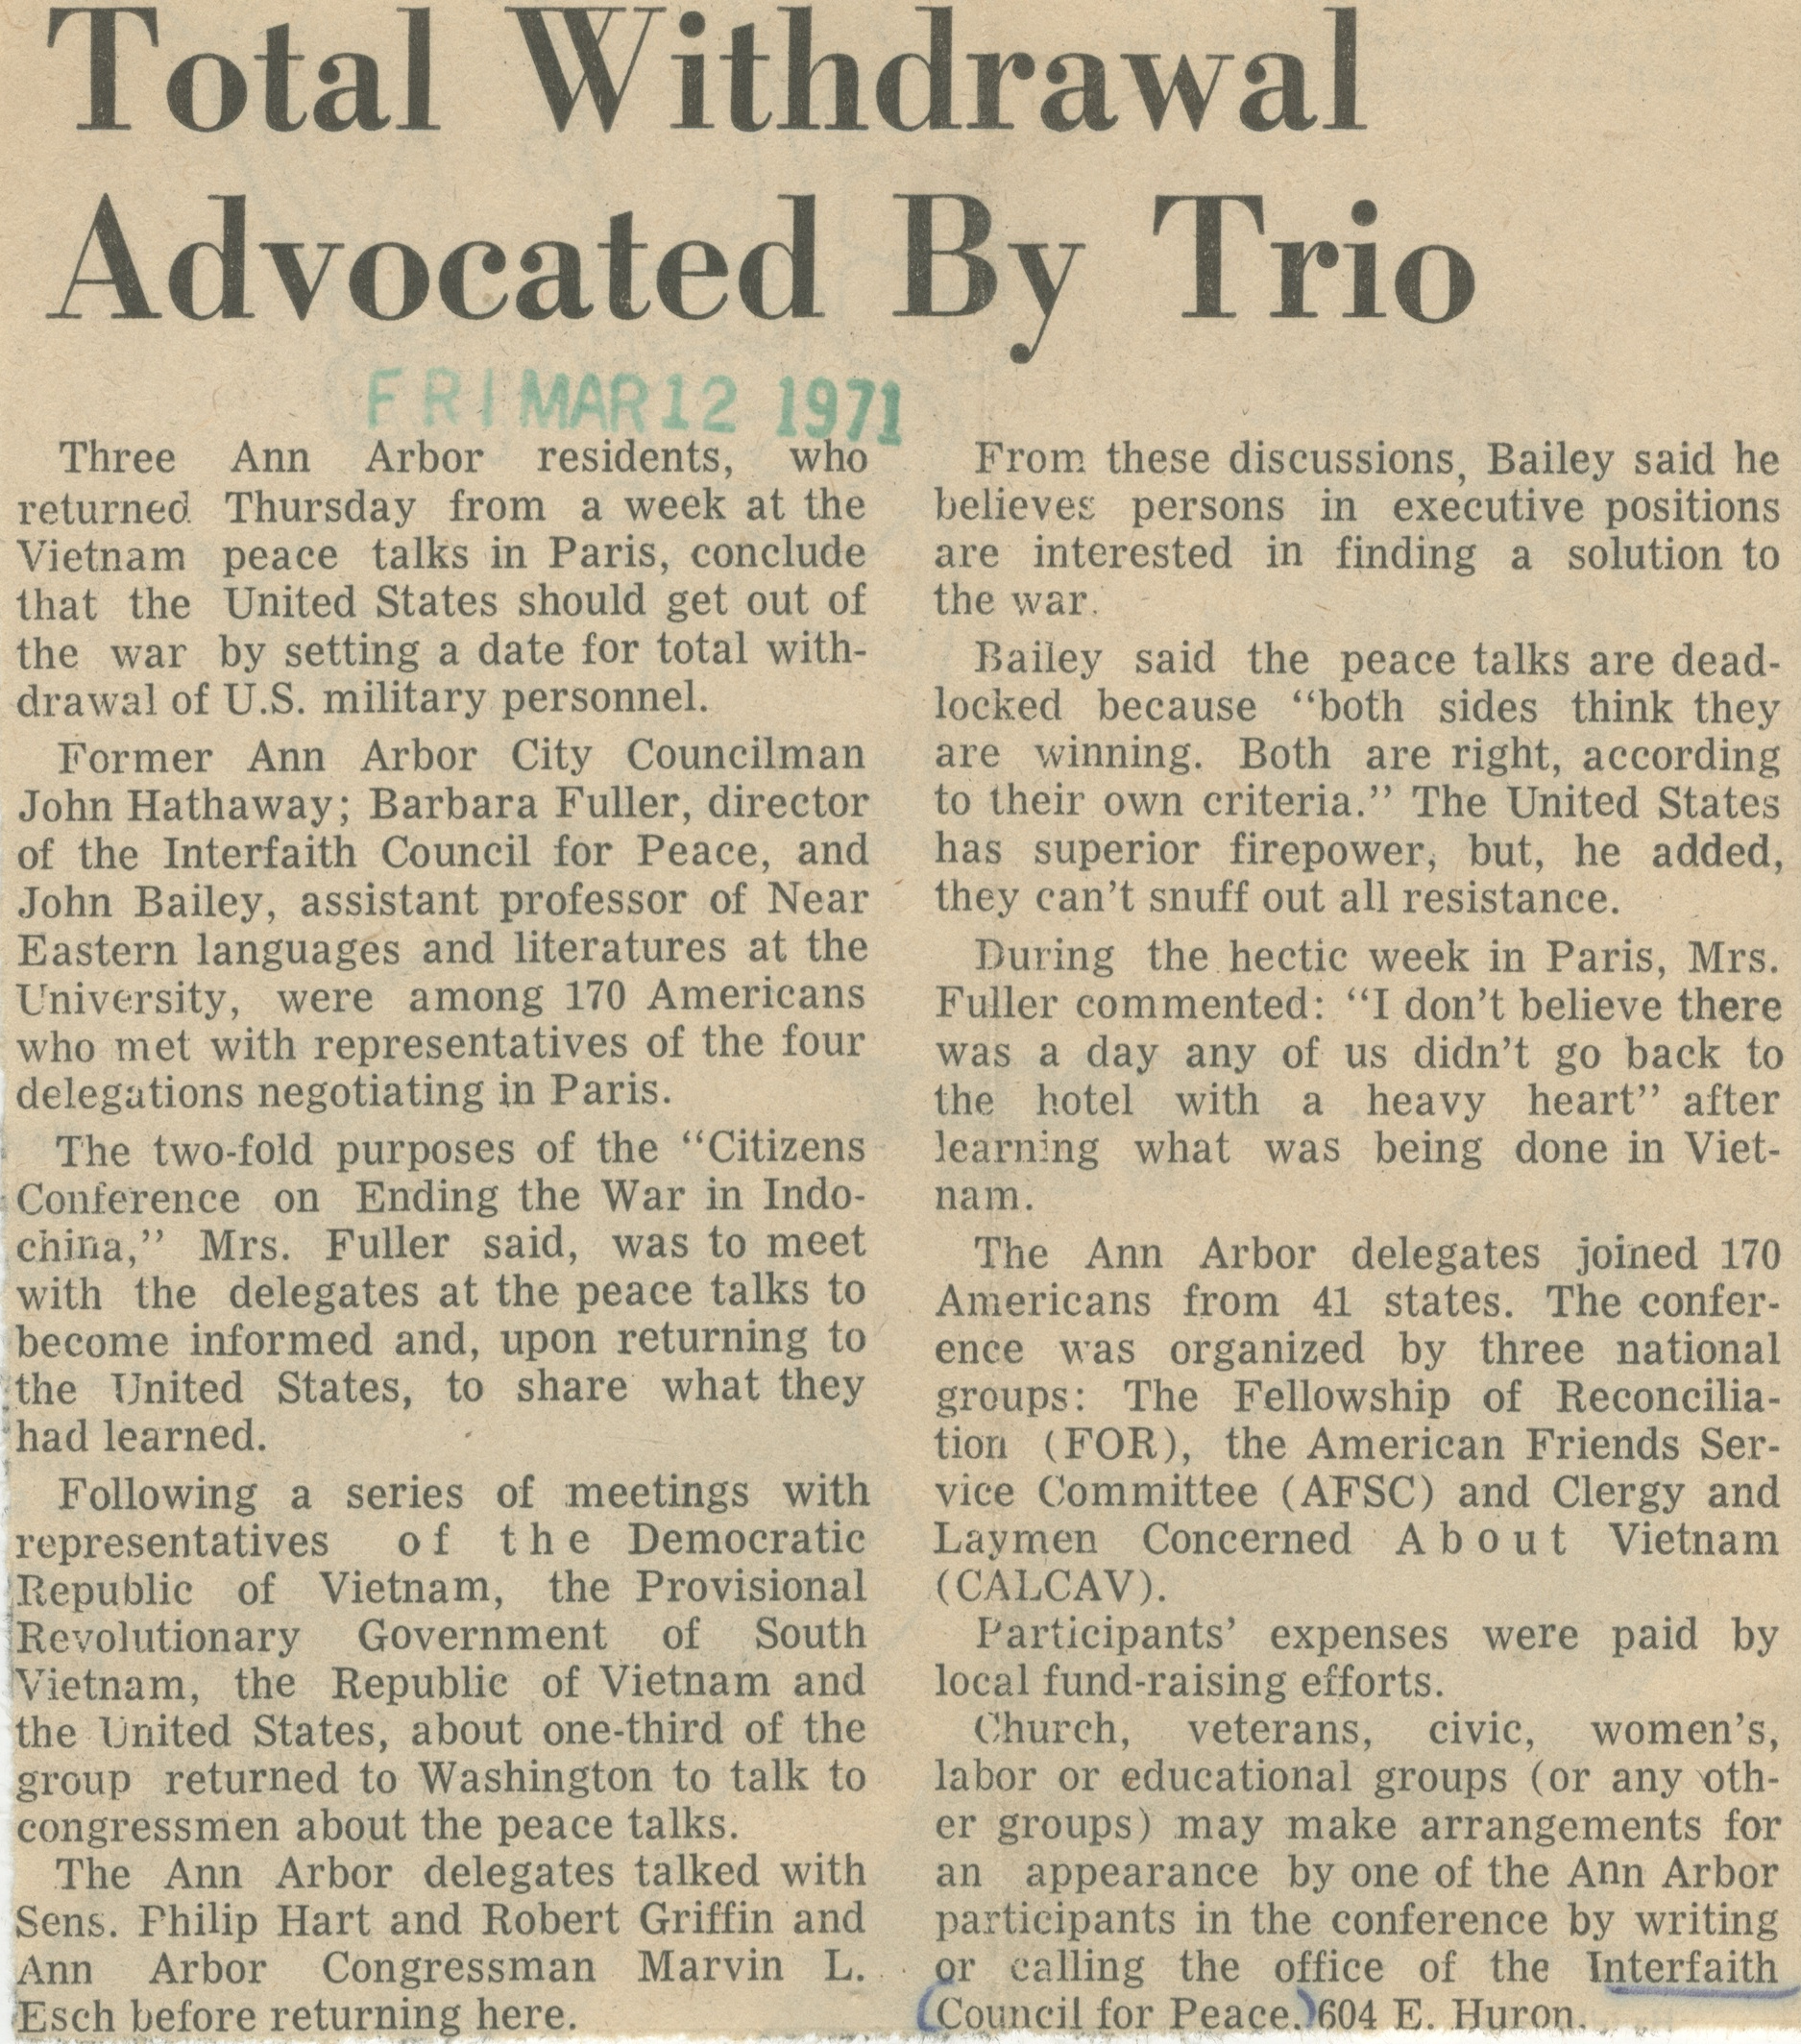 Total Withdrawal Advocated By Trio image